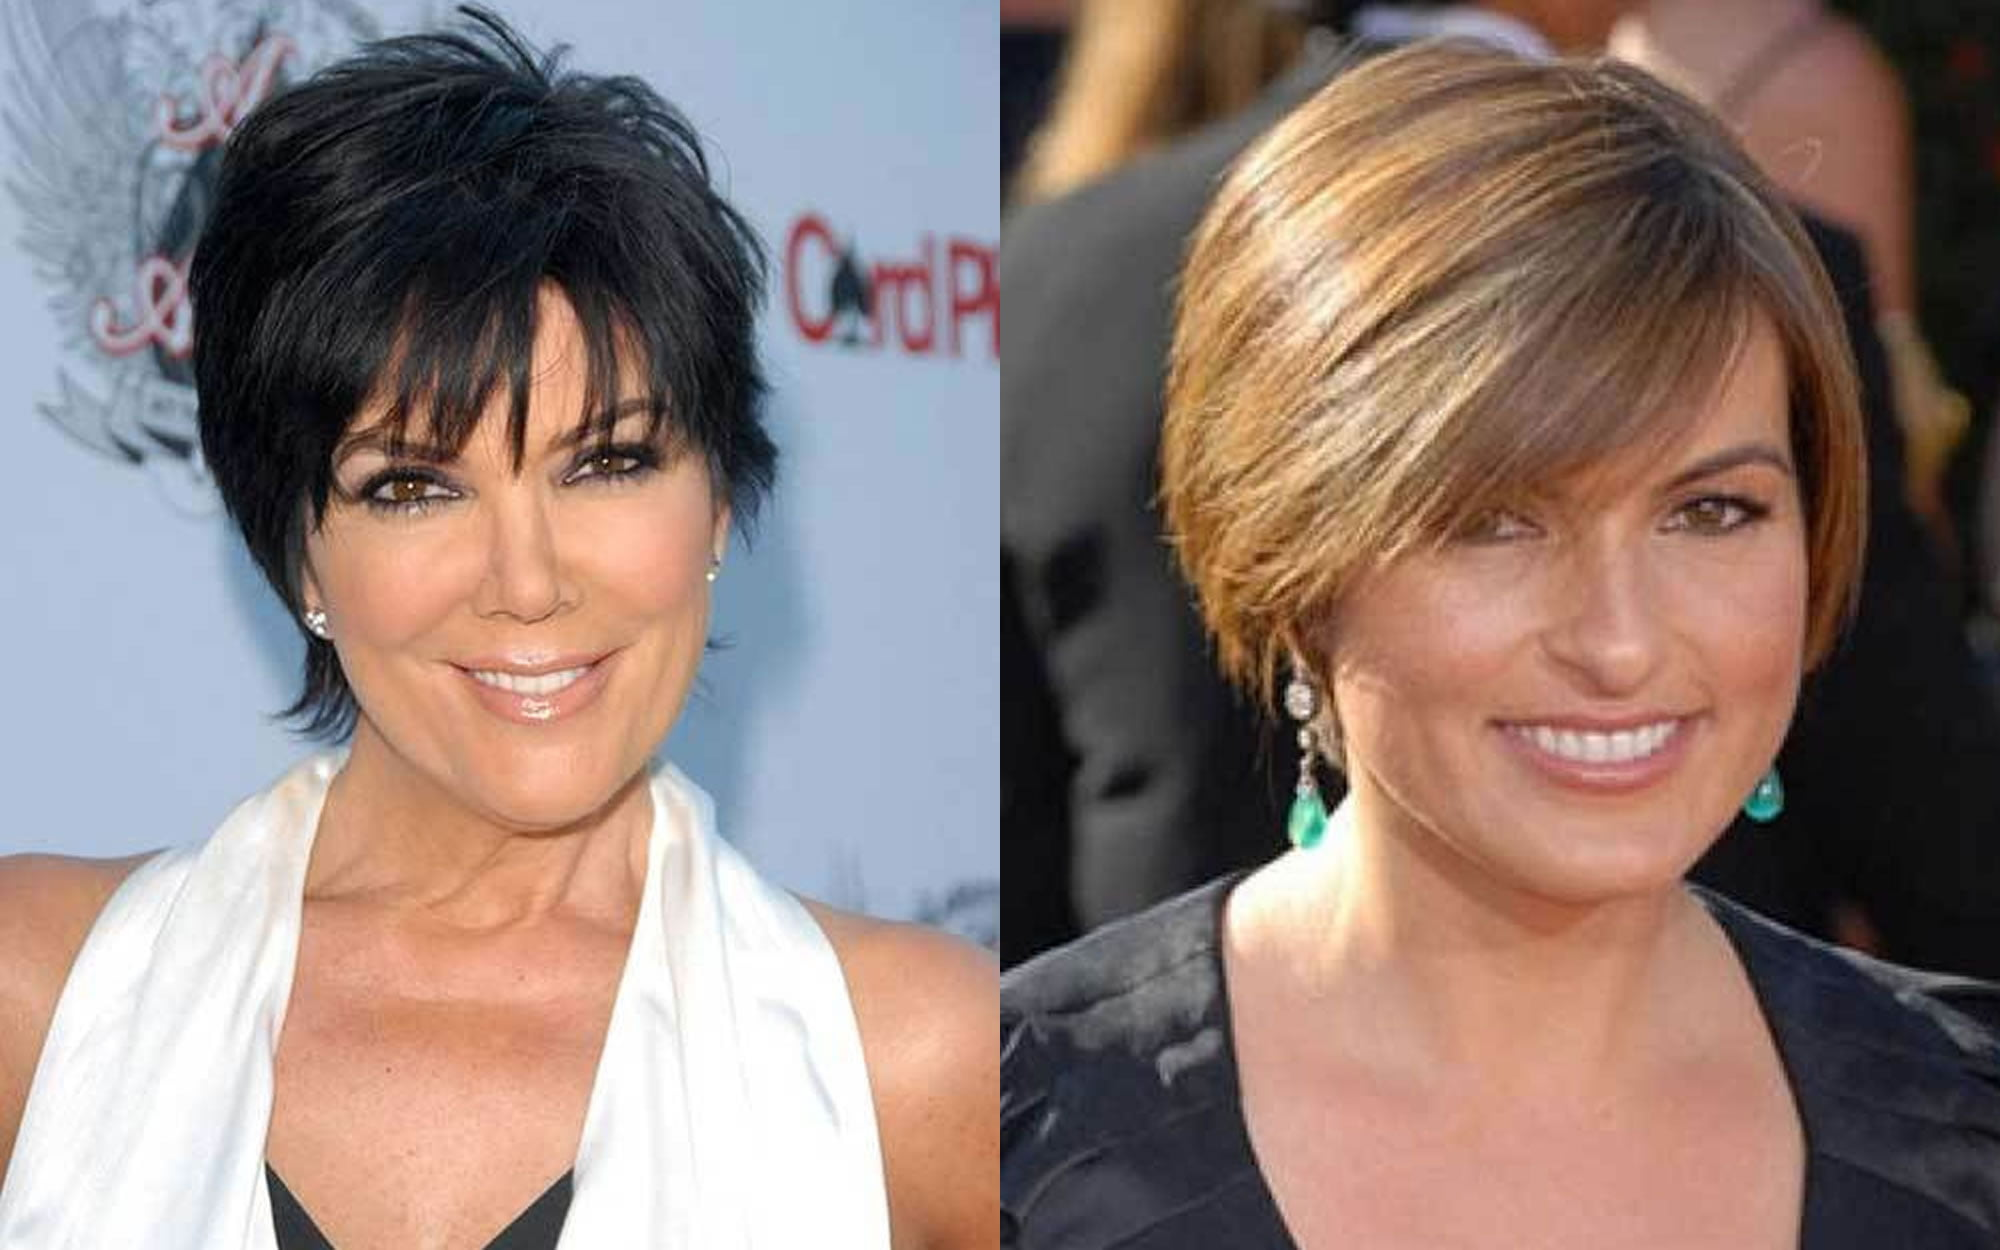 Hairstyles 2019: Short Haircut Images For Older Women & Pixie+Bob Fine Hair